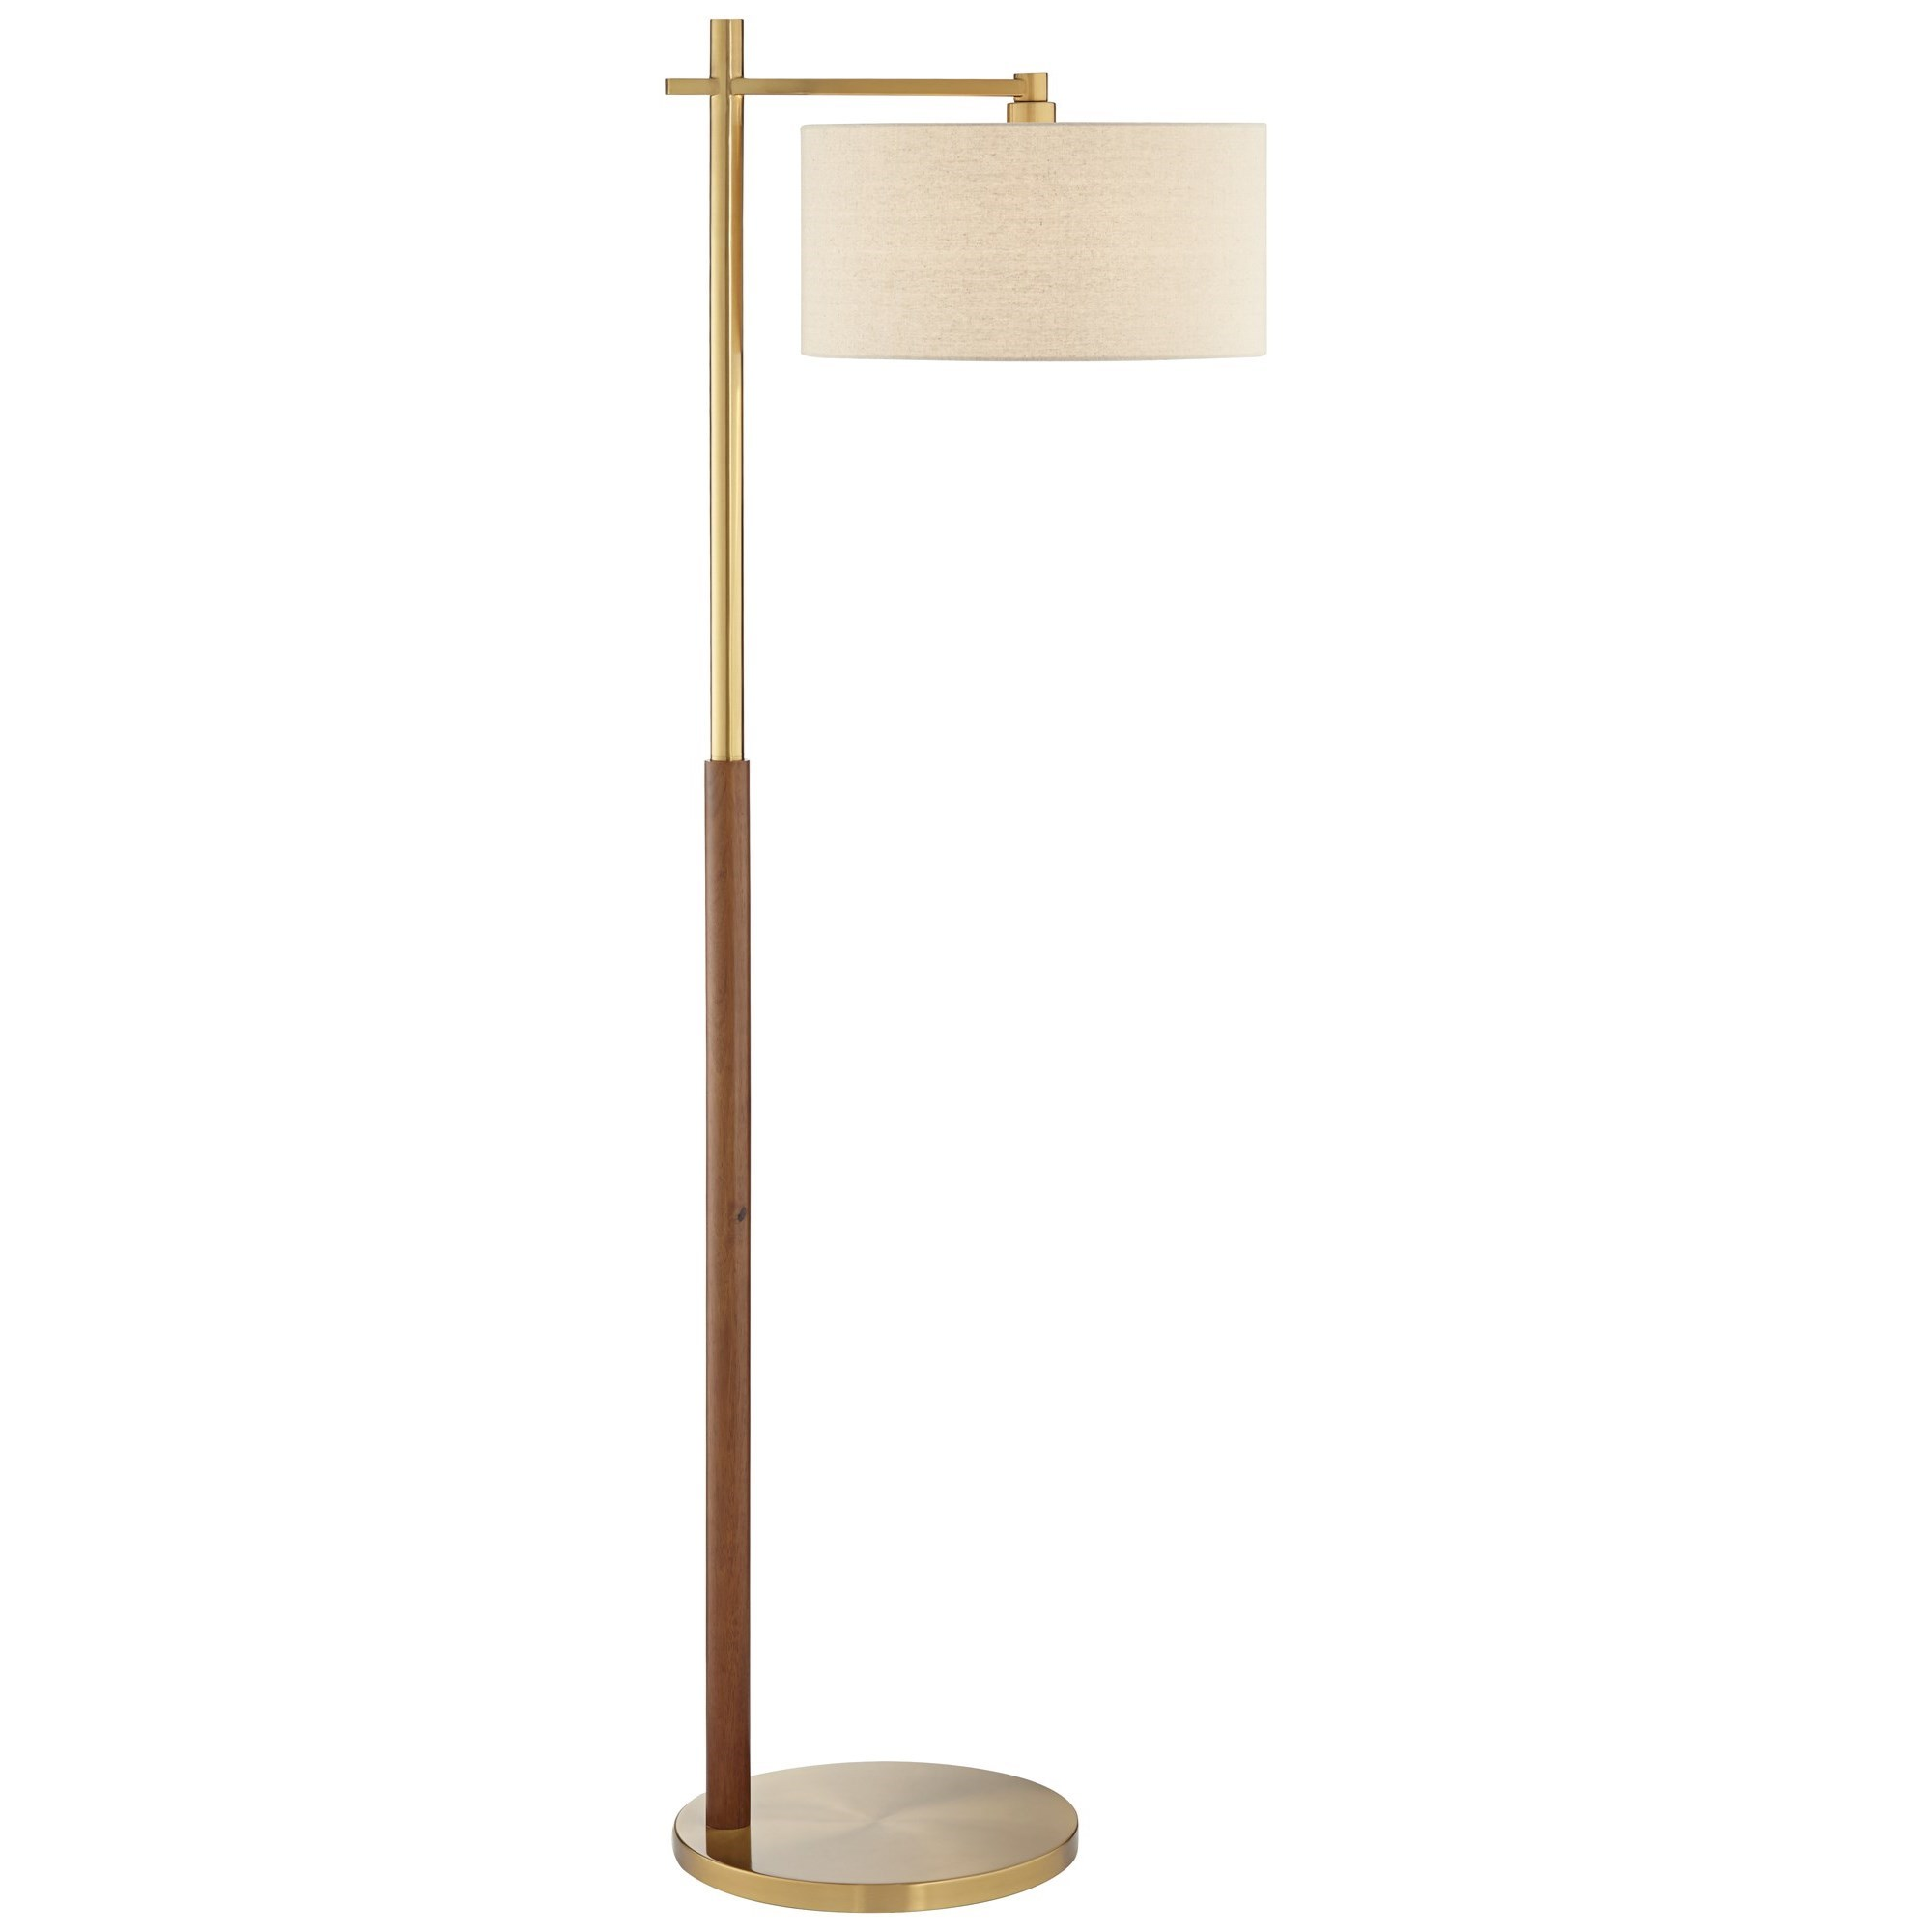 PCL FLOOR LAMPS Floor Lamp by PCL LIGHTING at Walker's Furniture